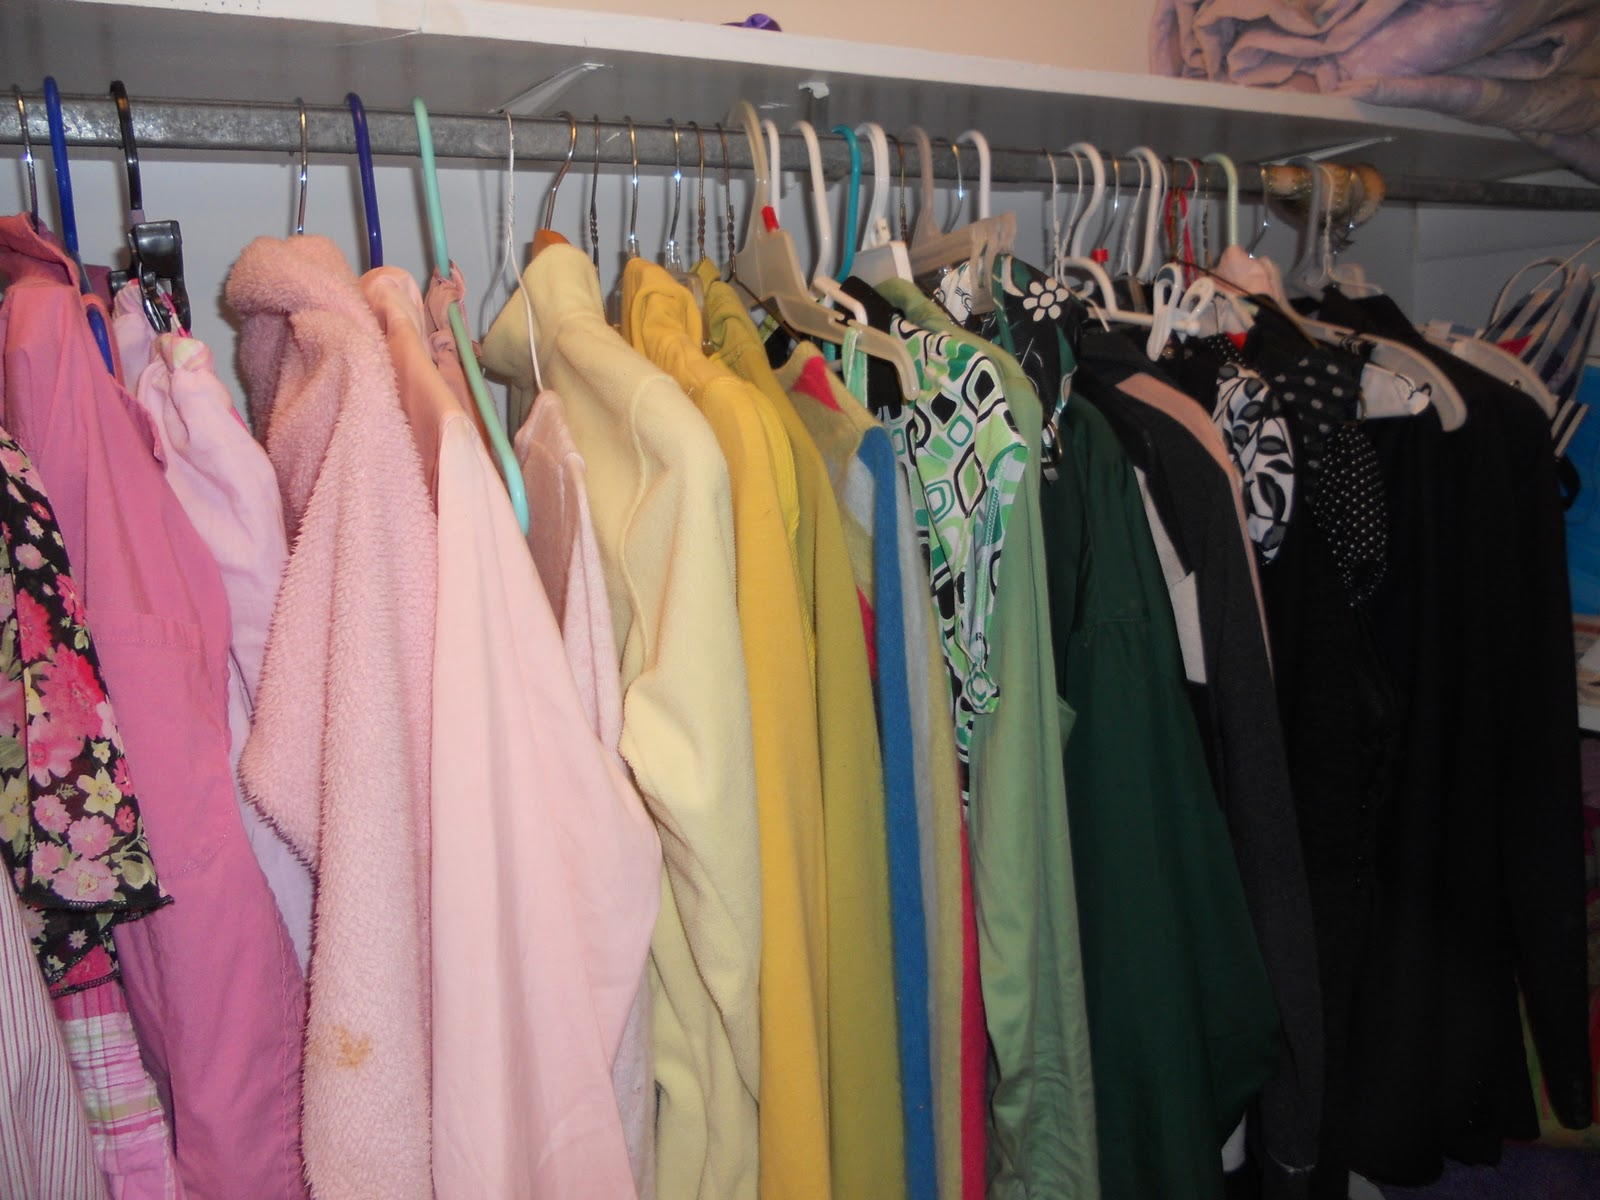 How We Spend Our Days: Color Coordinated Closet